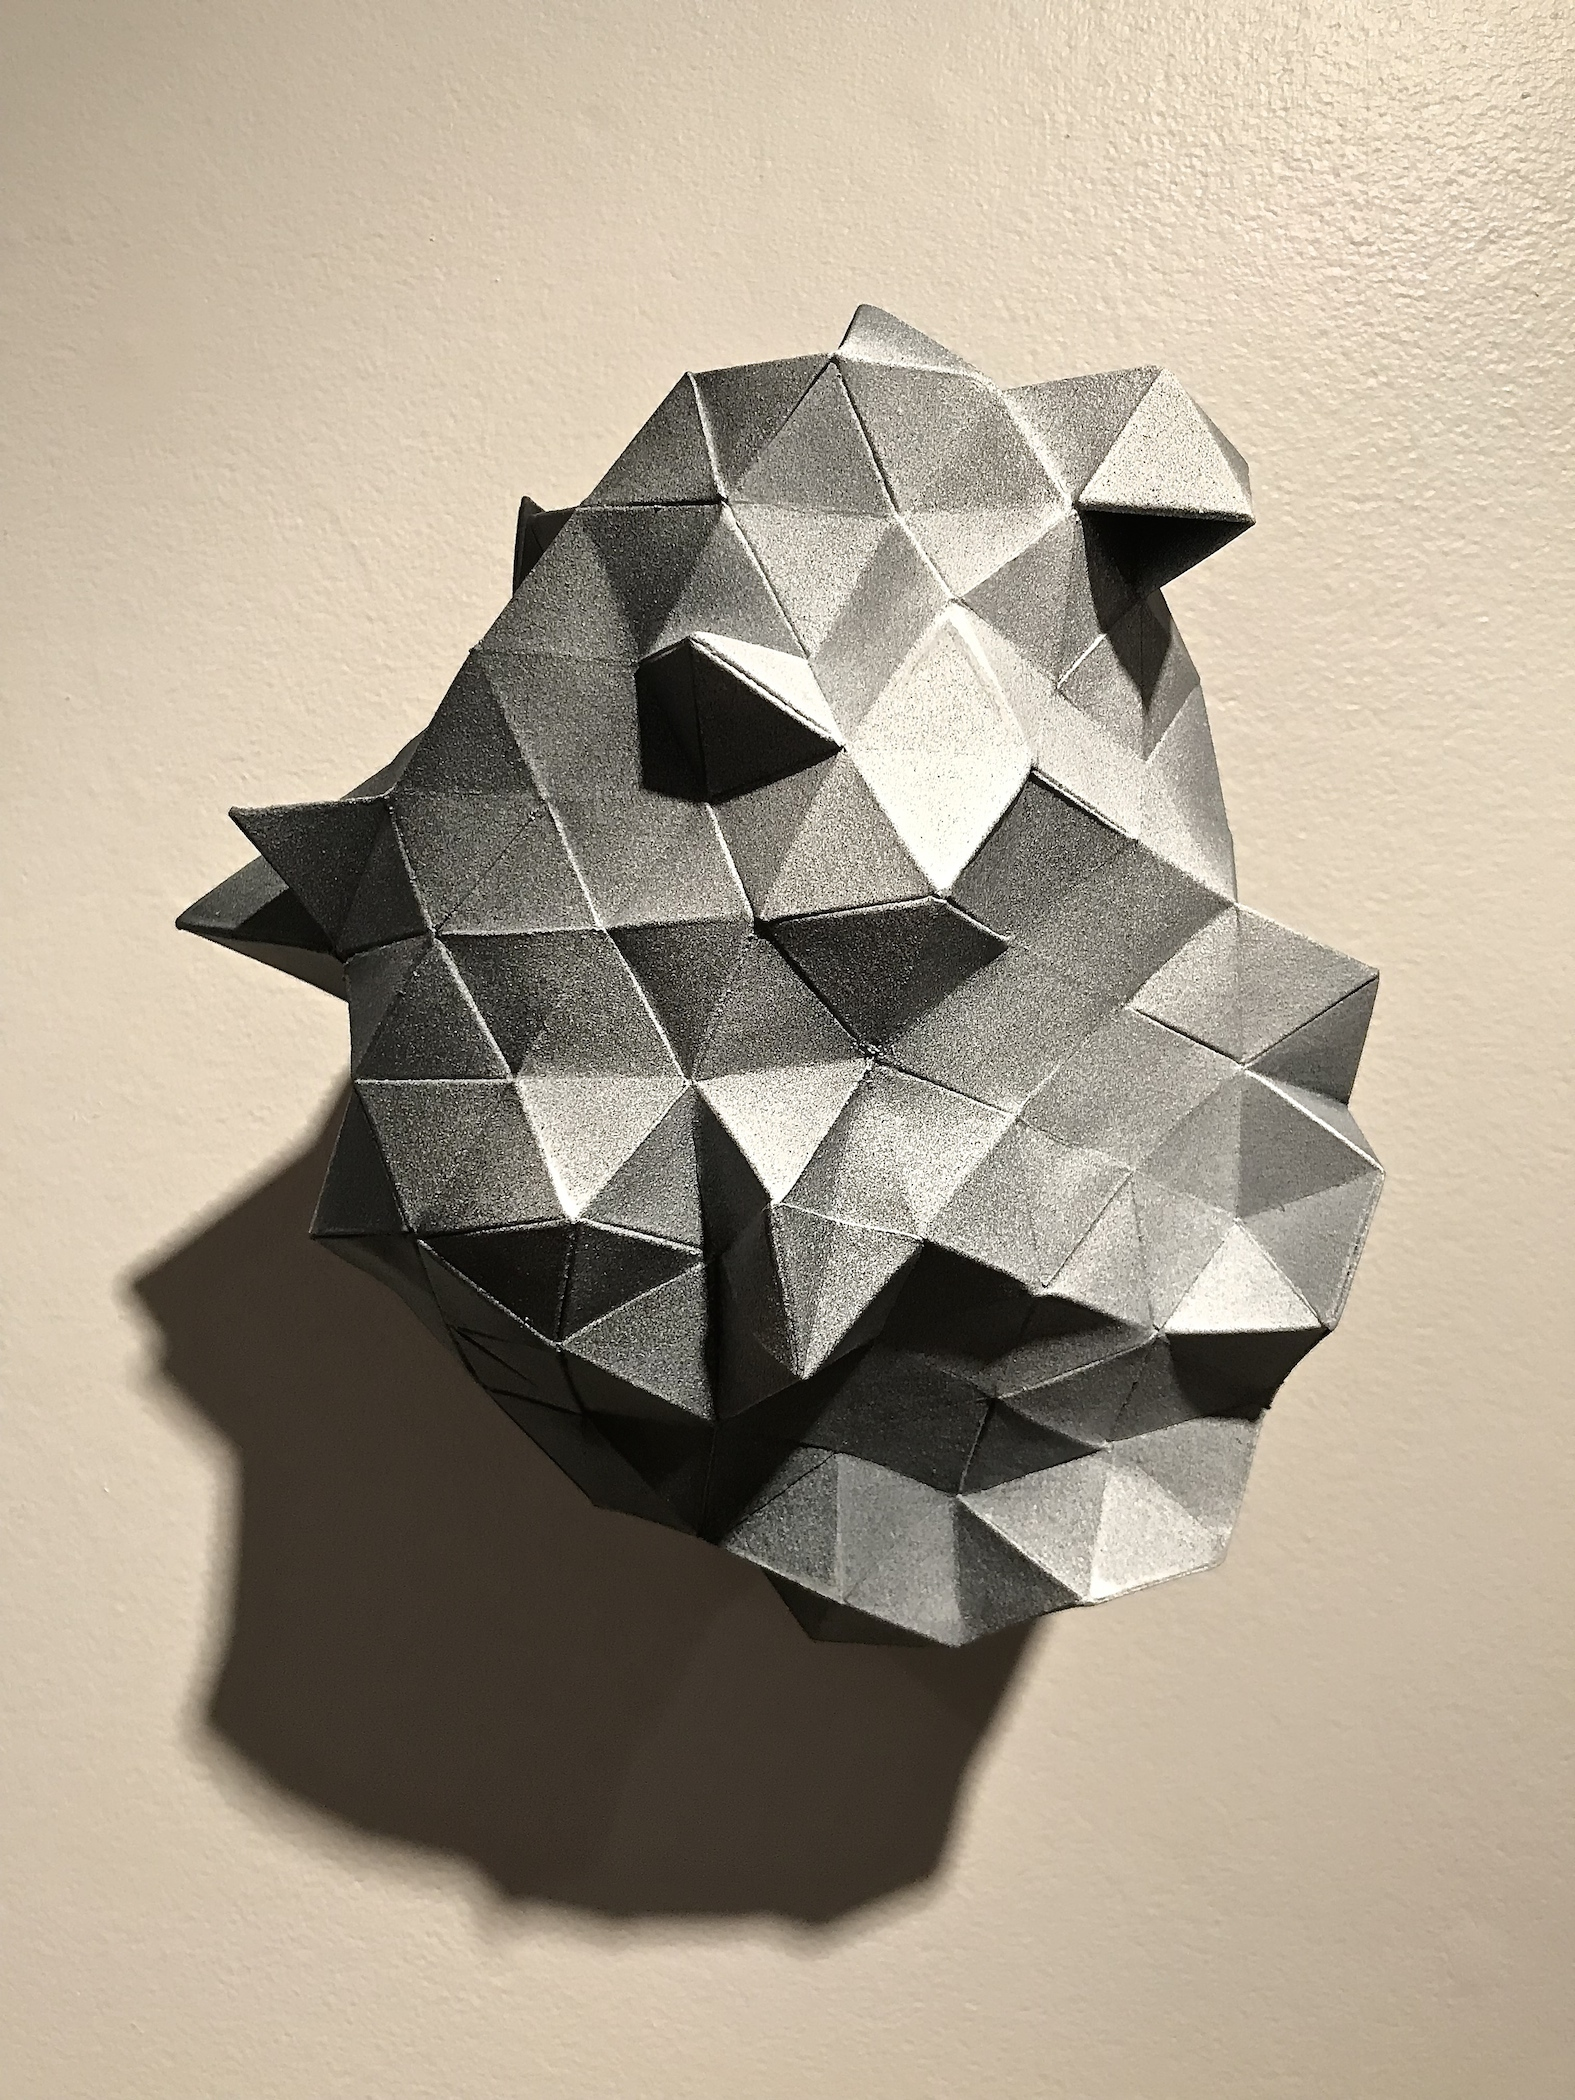 Hsin-Hsi Chen_Hedrons series #3